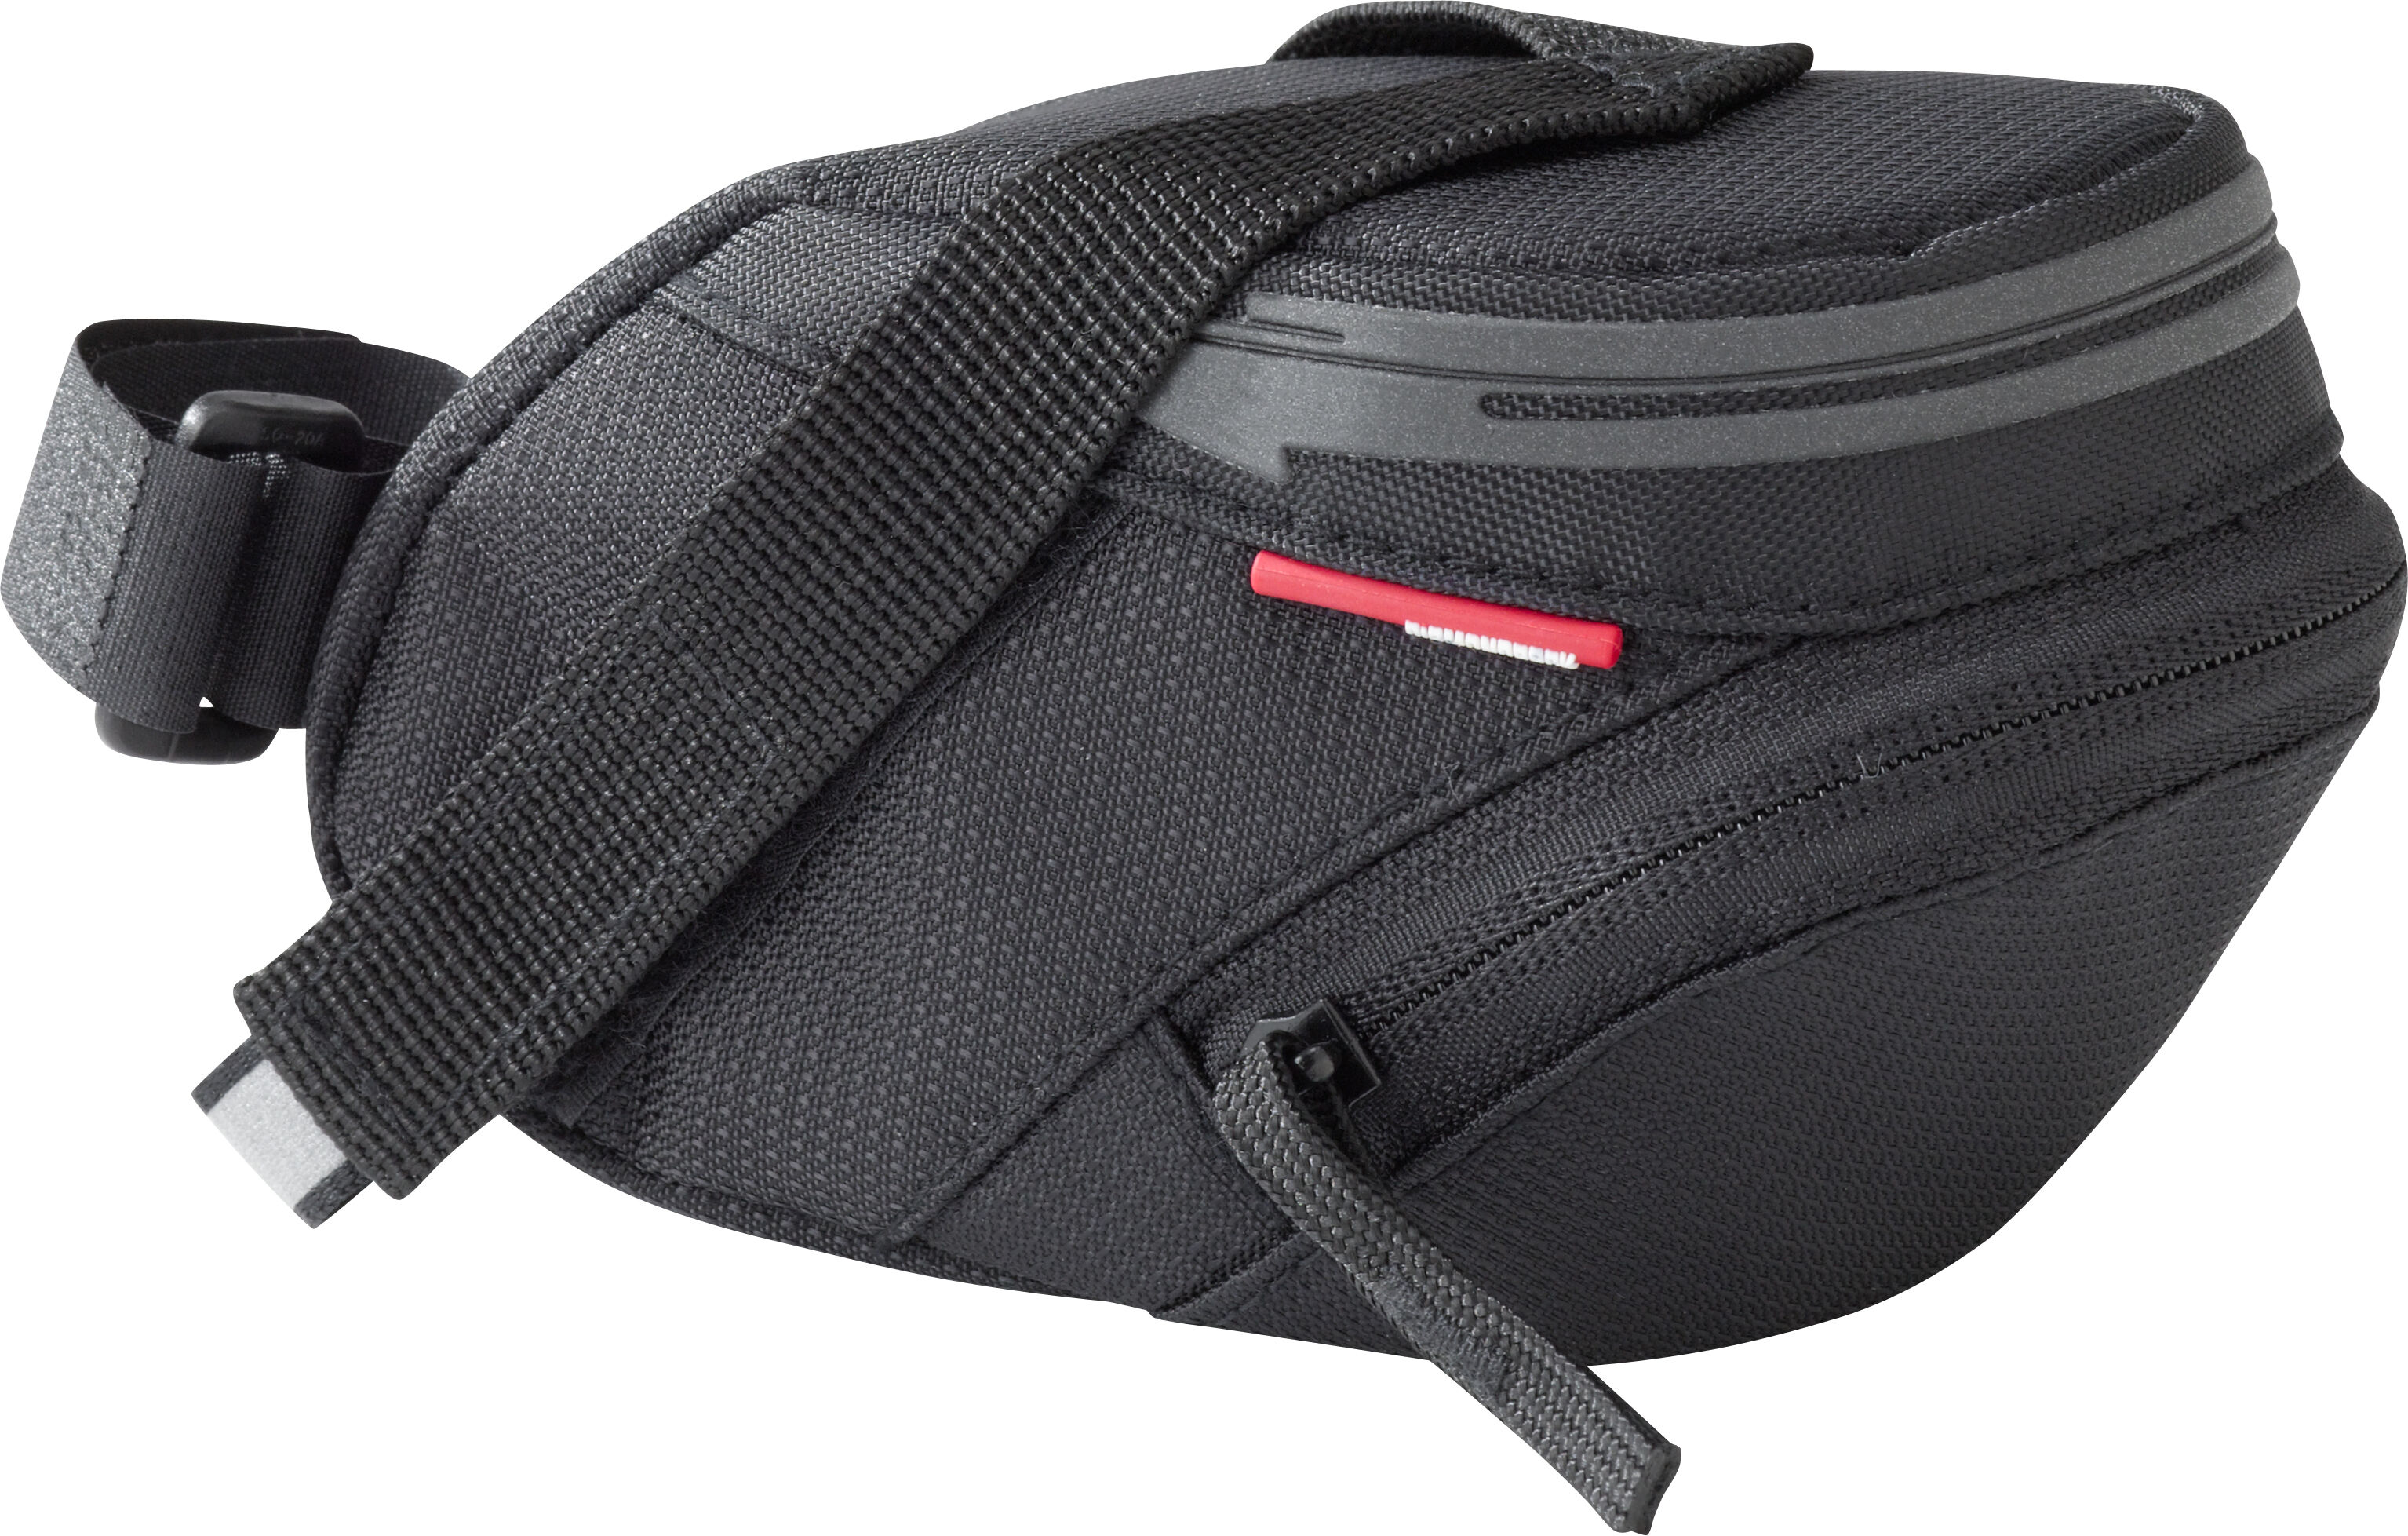 DBS 50ci Bike Bag / Small